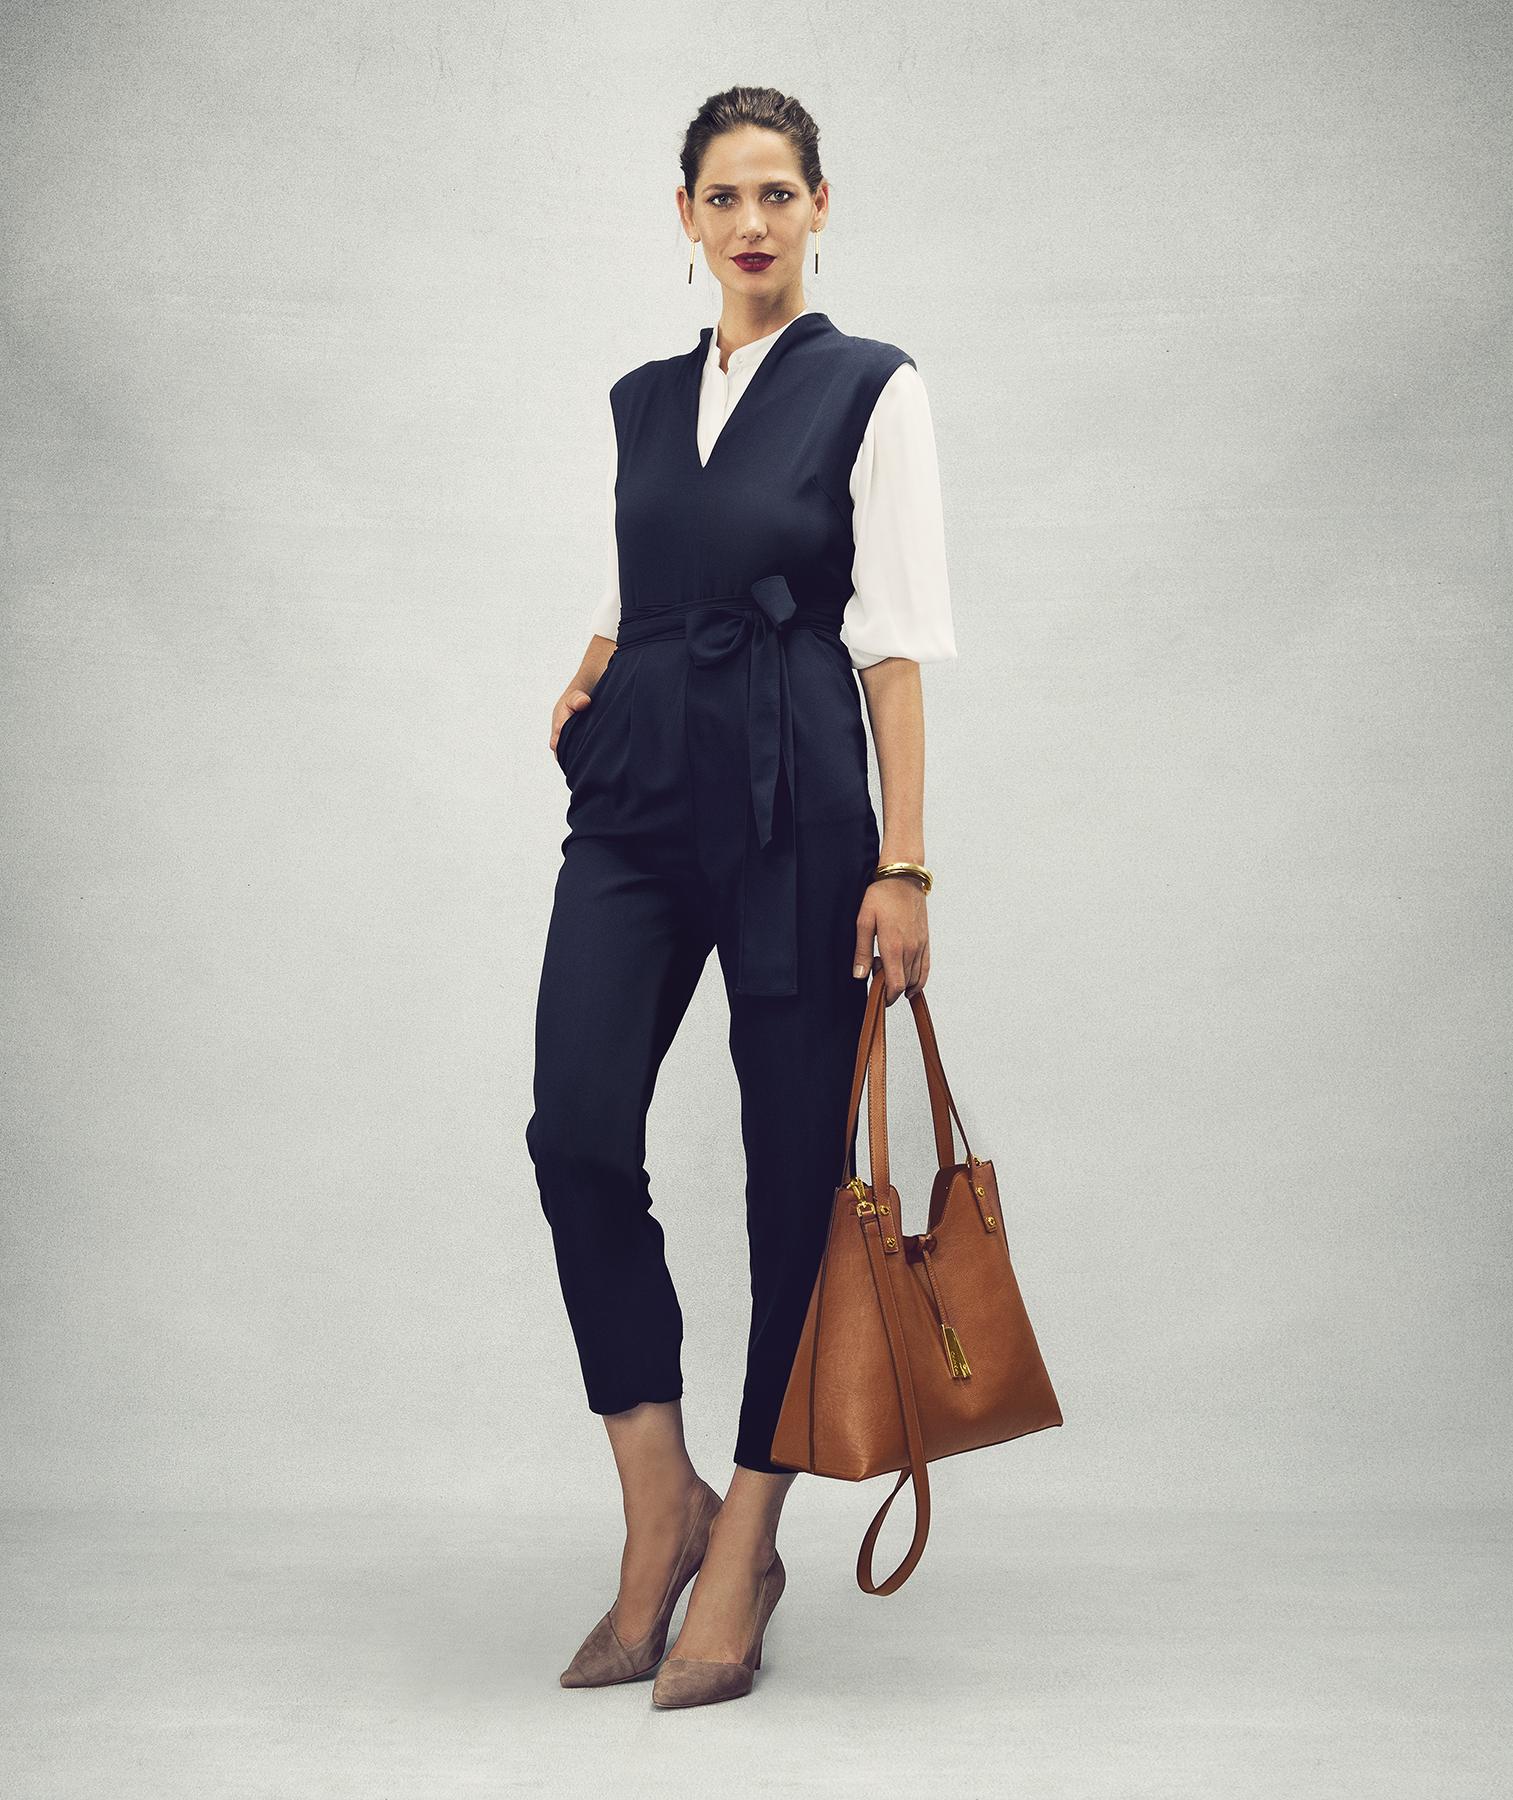 Outfit with jumpsuit and blouse